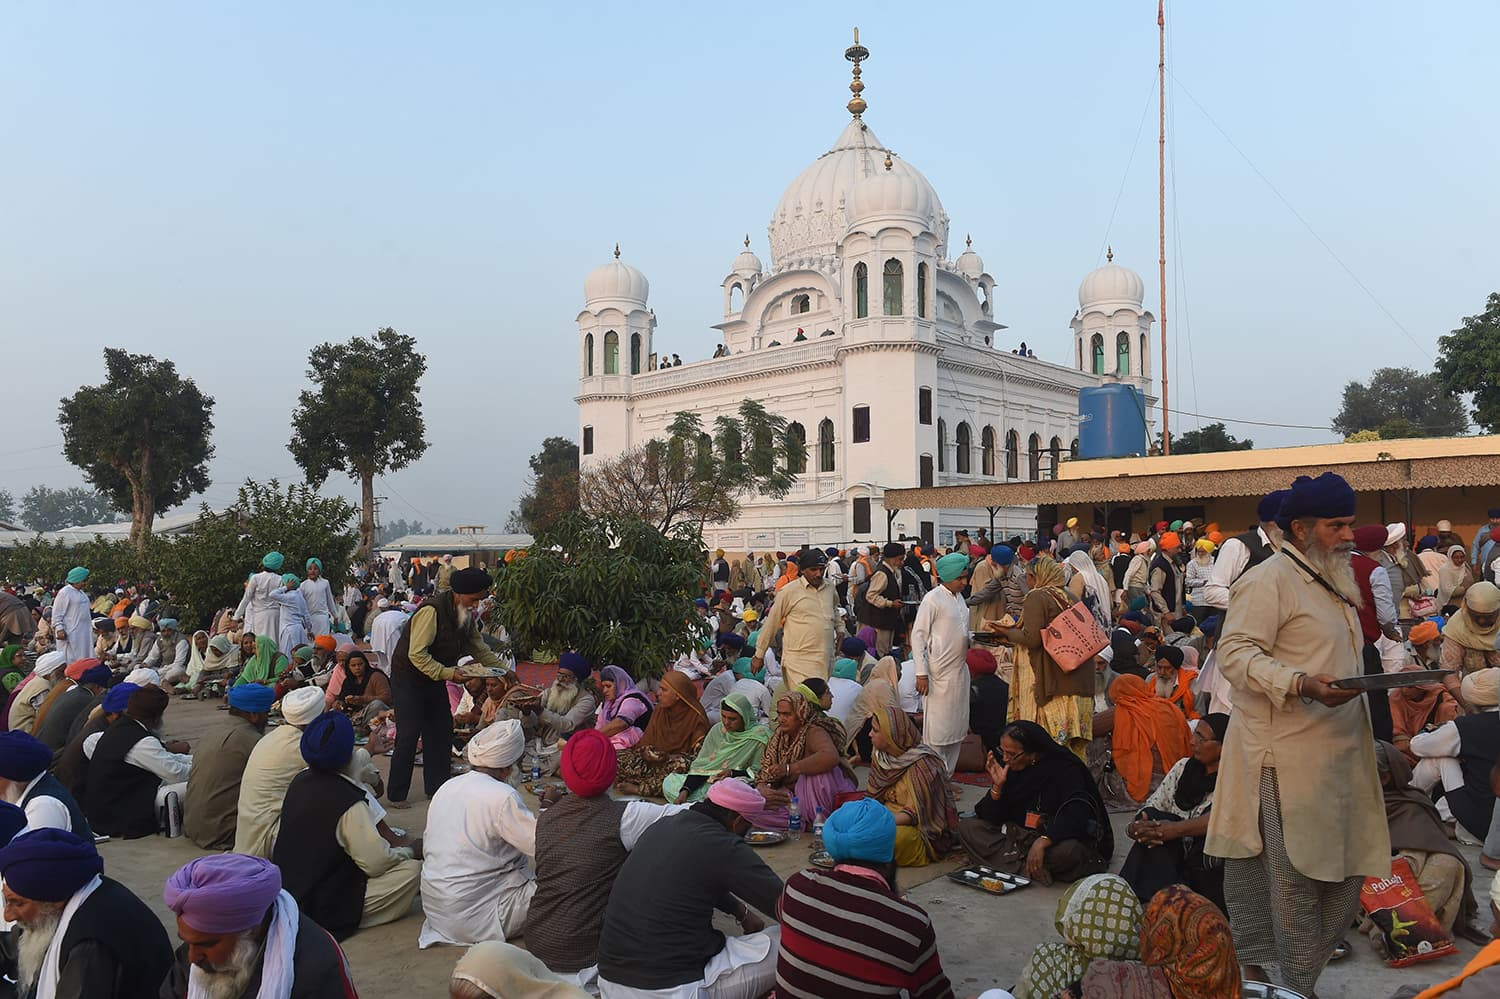 Sikh Pilgrims partake in Langar in front of Kartarpur Gurdwara Sahib after the groundbreaking ceremony.—AFP